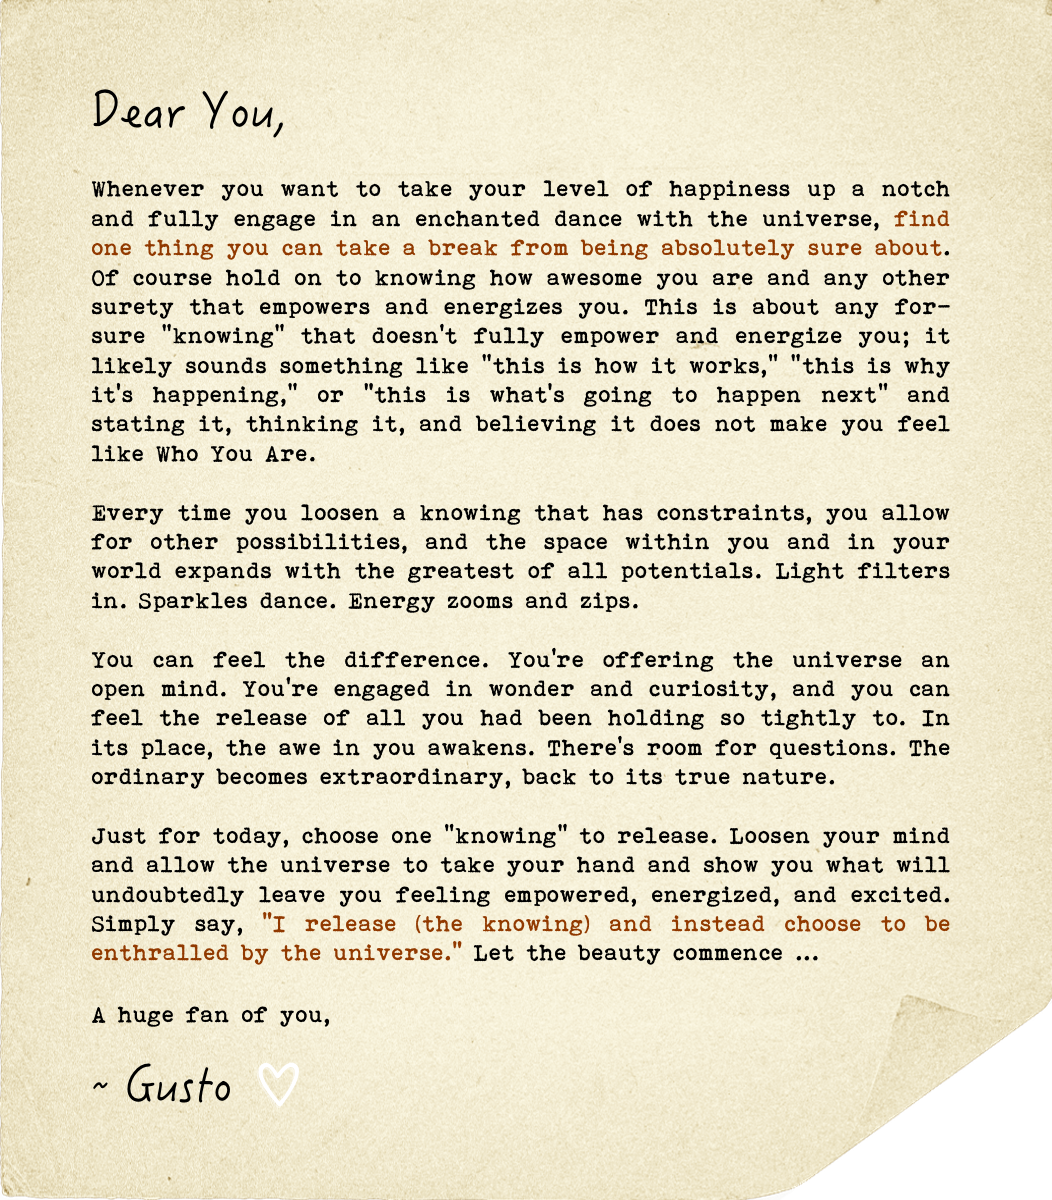 A Love Letter, Get Enthralled